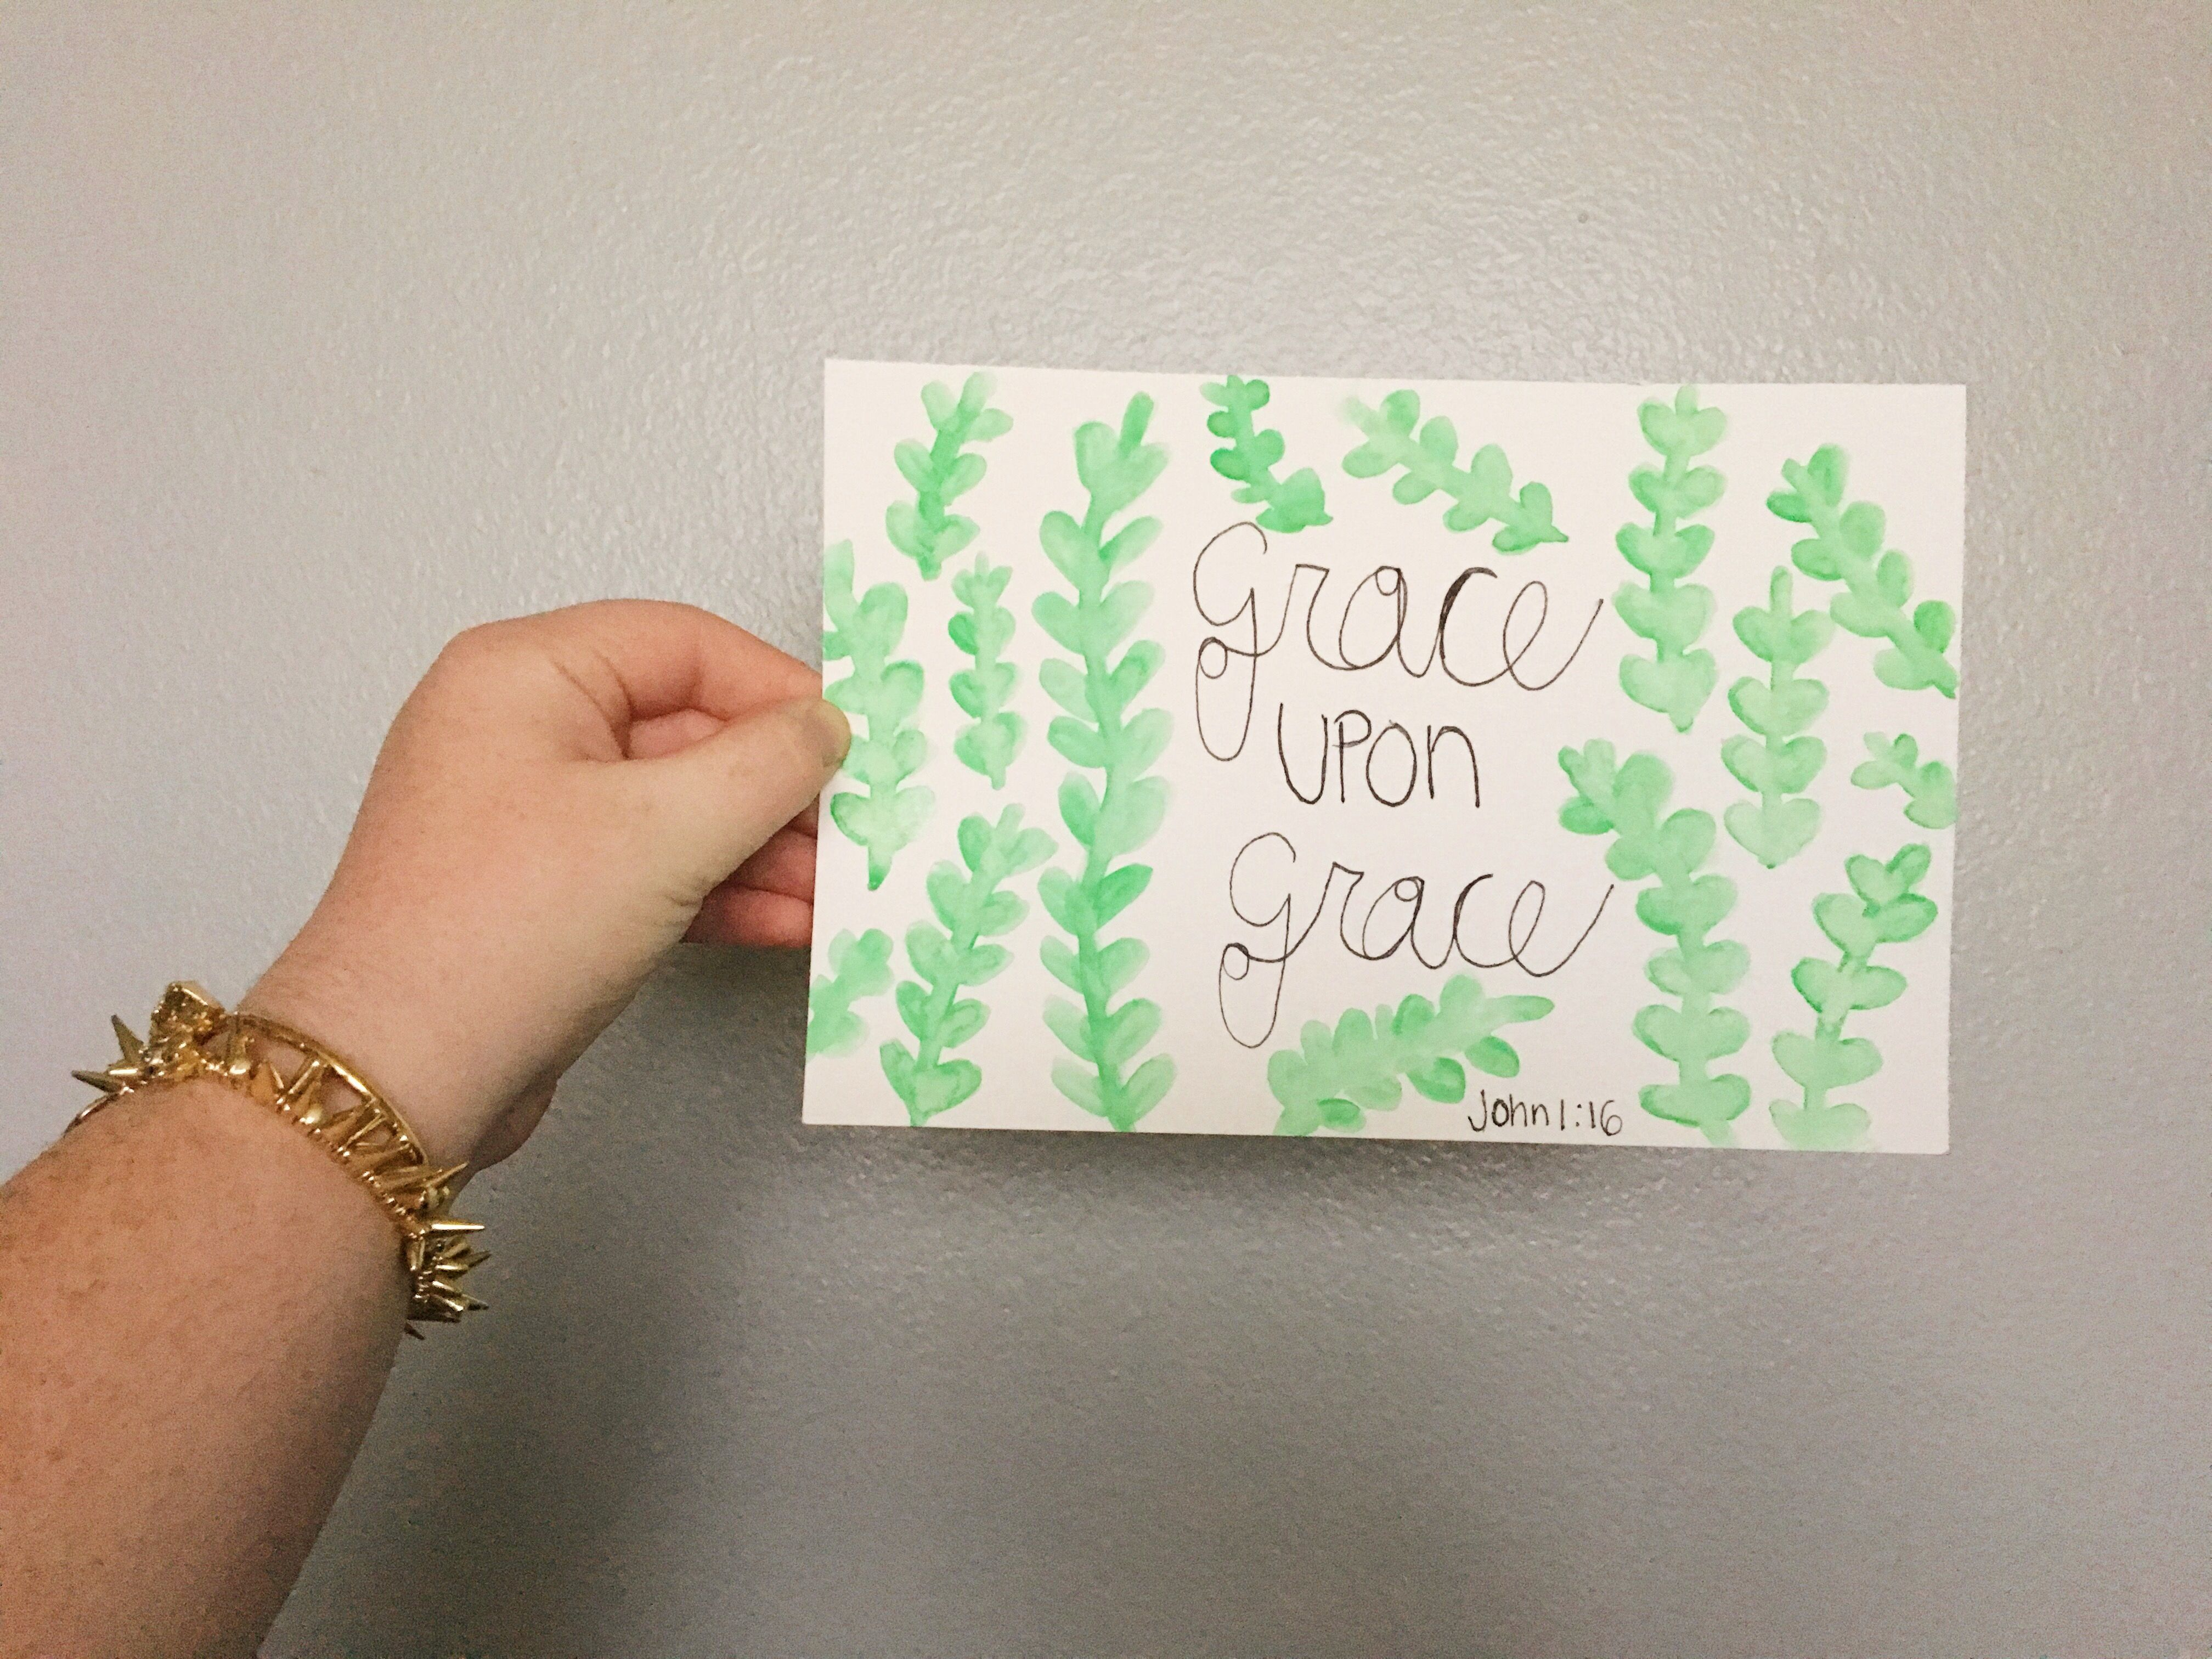 But he gives us grace upon grace. This post dives in deeper to one of my favorite verses!